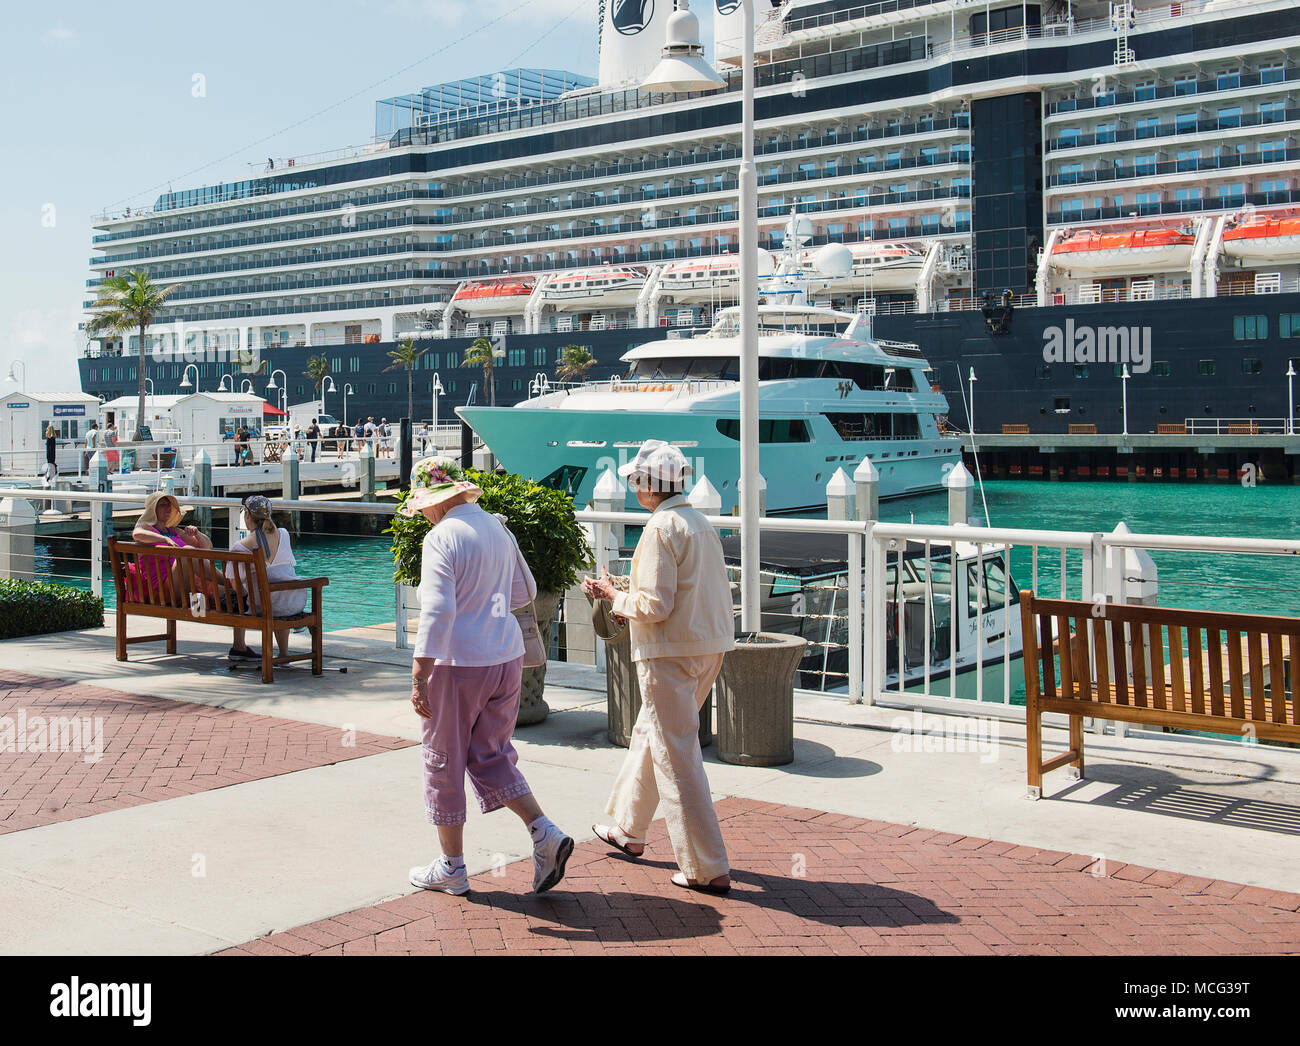 A cruise ship docked in the marina in Key West, Florida. - Stock Image